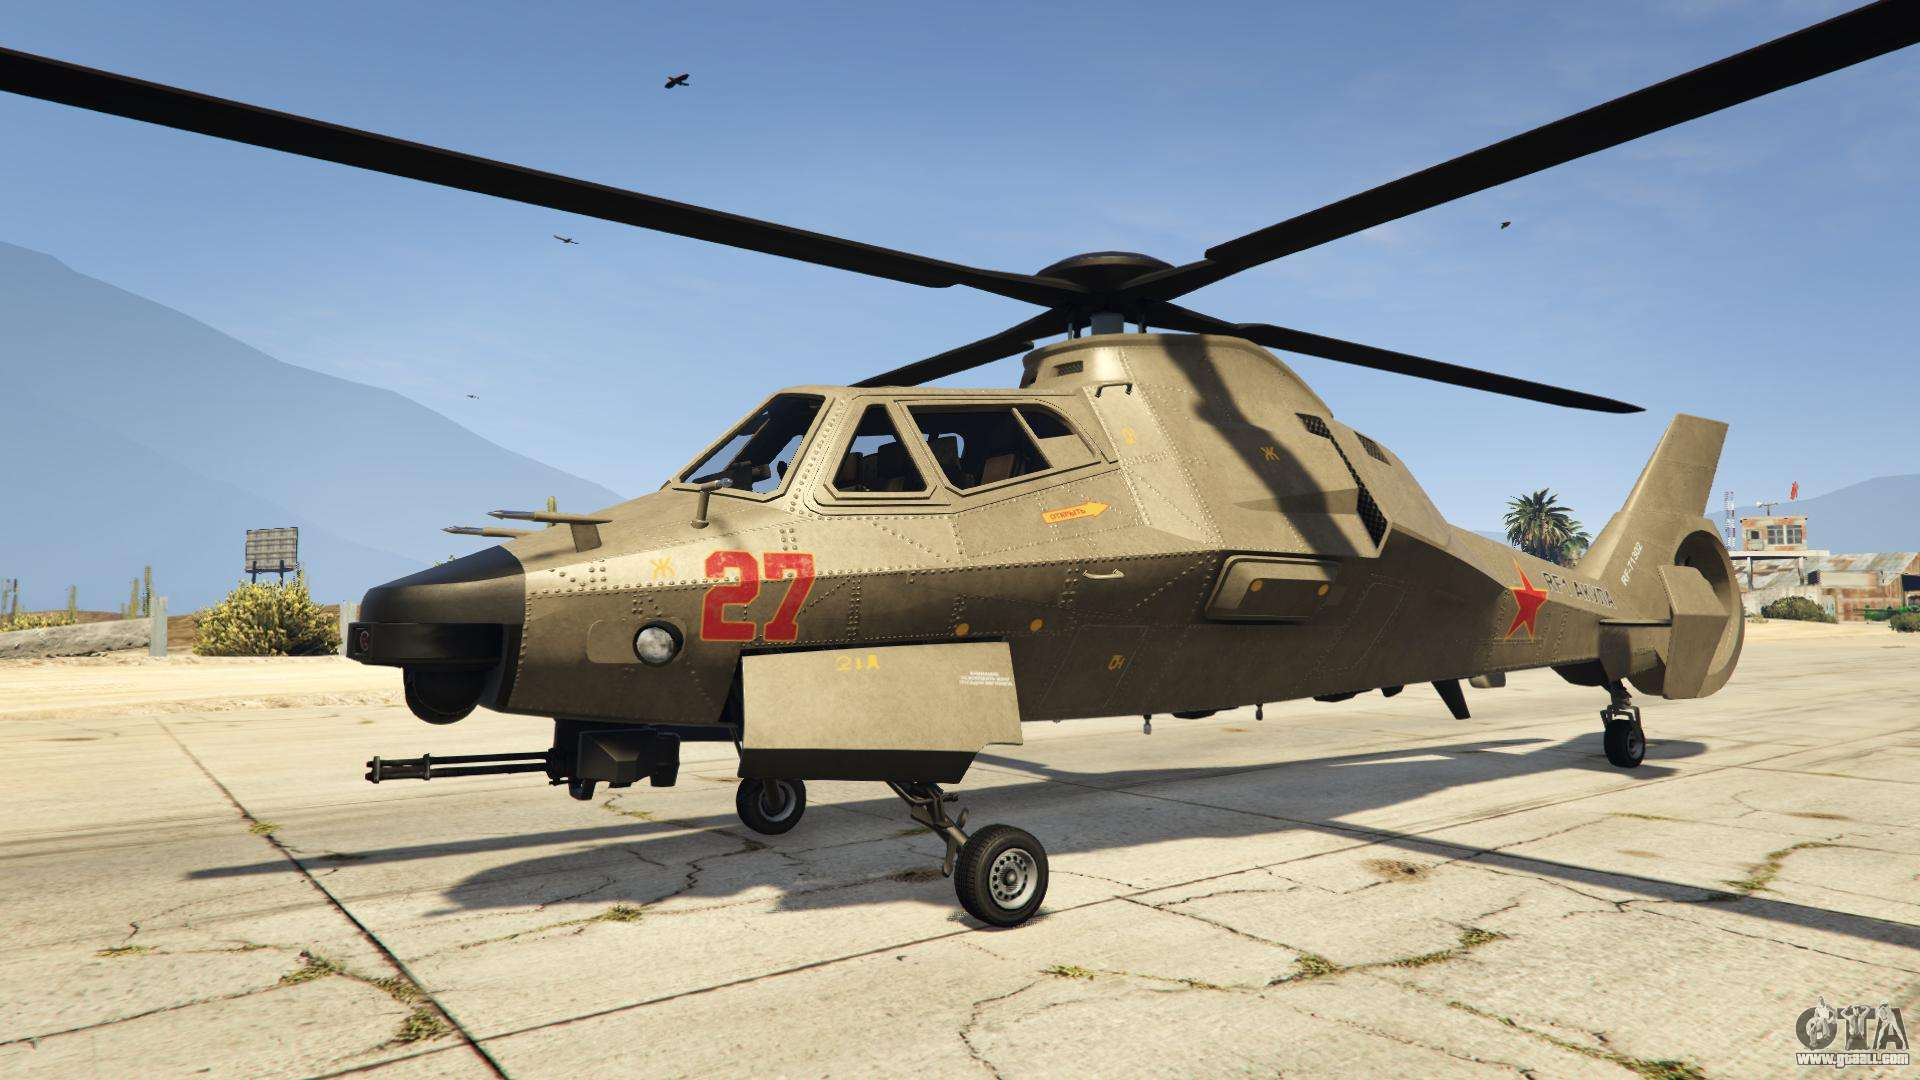 Buckingham The Akula GTA 5